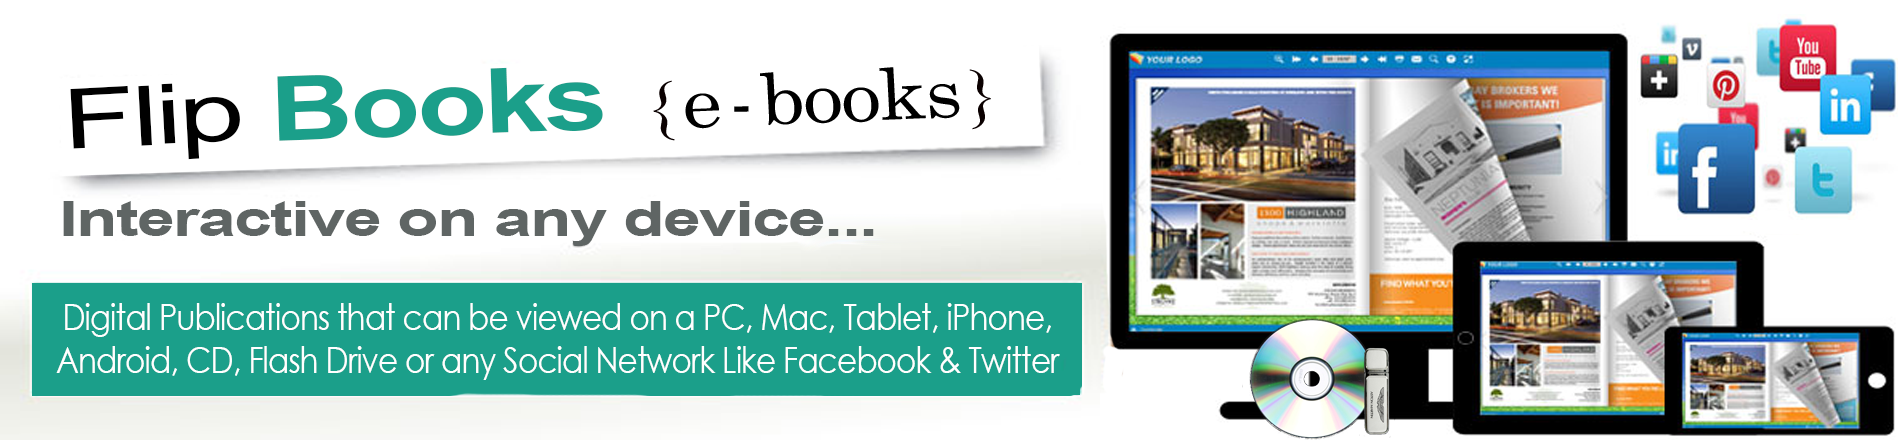 Flip Book Catalog Platforms